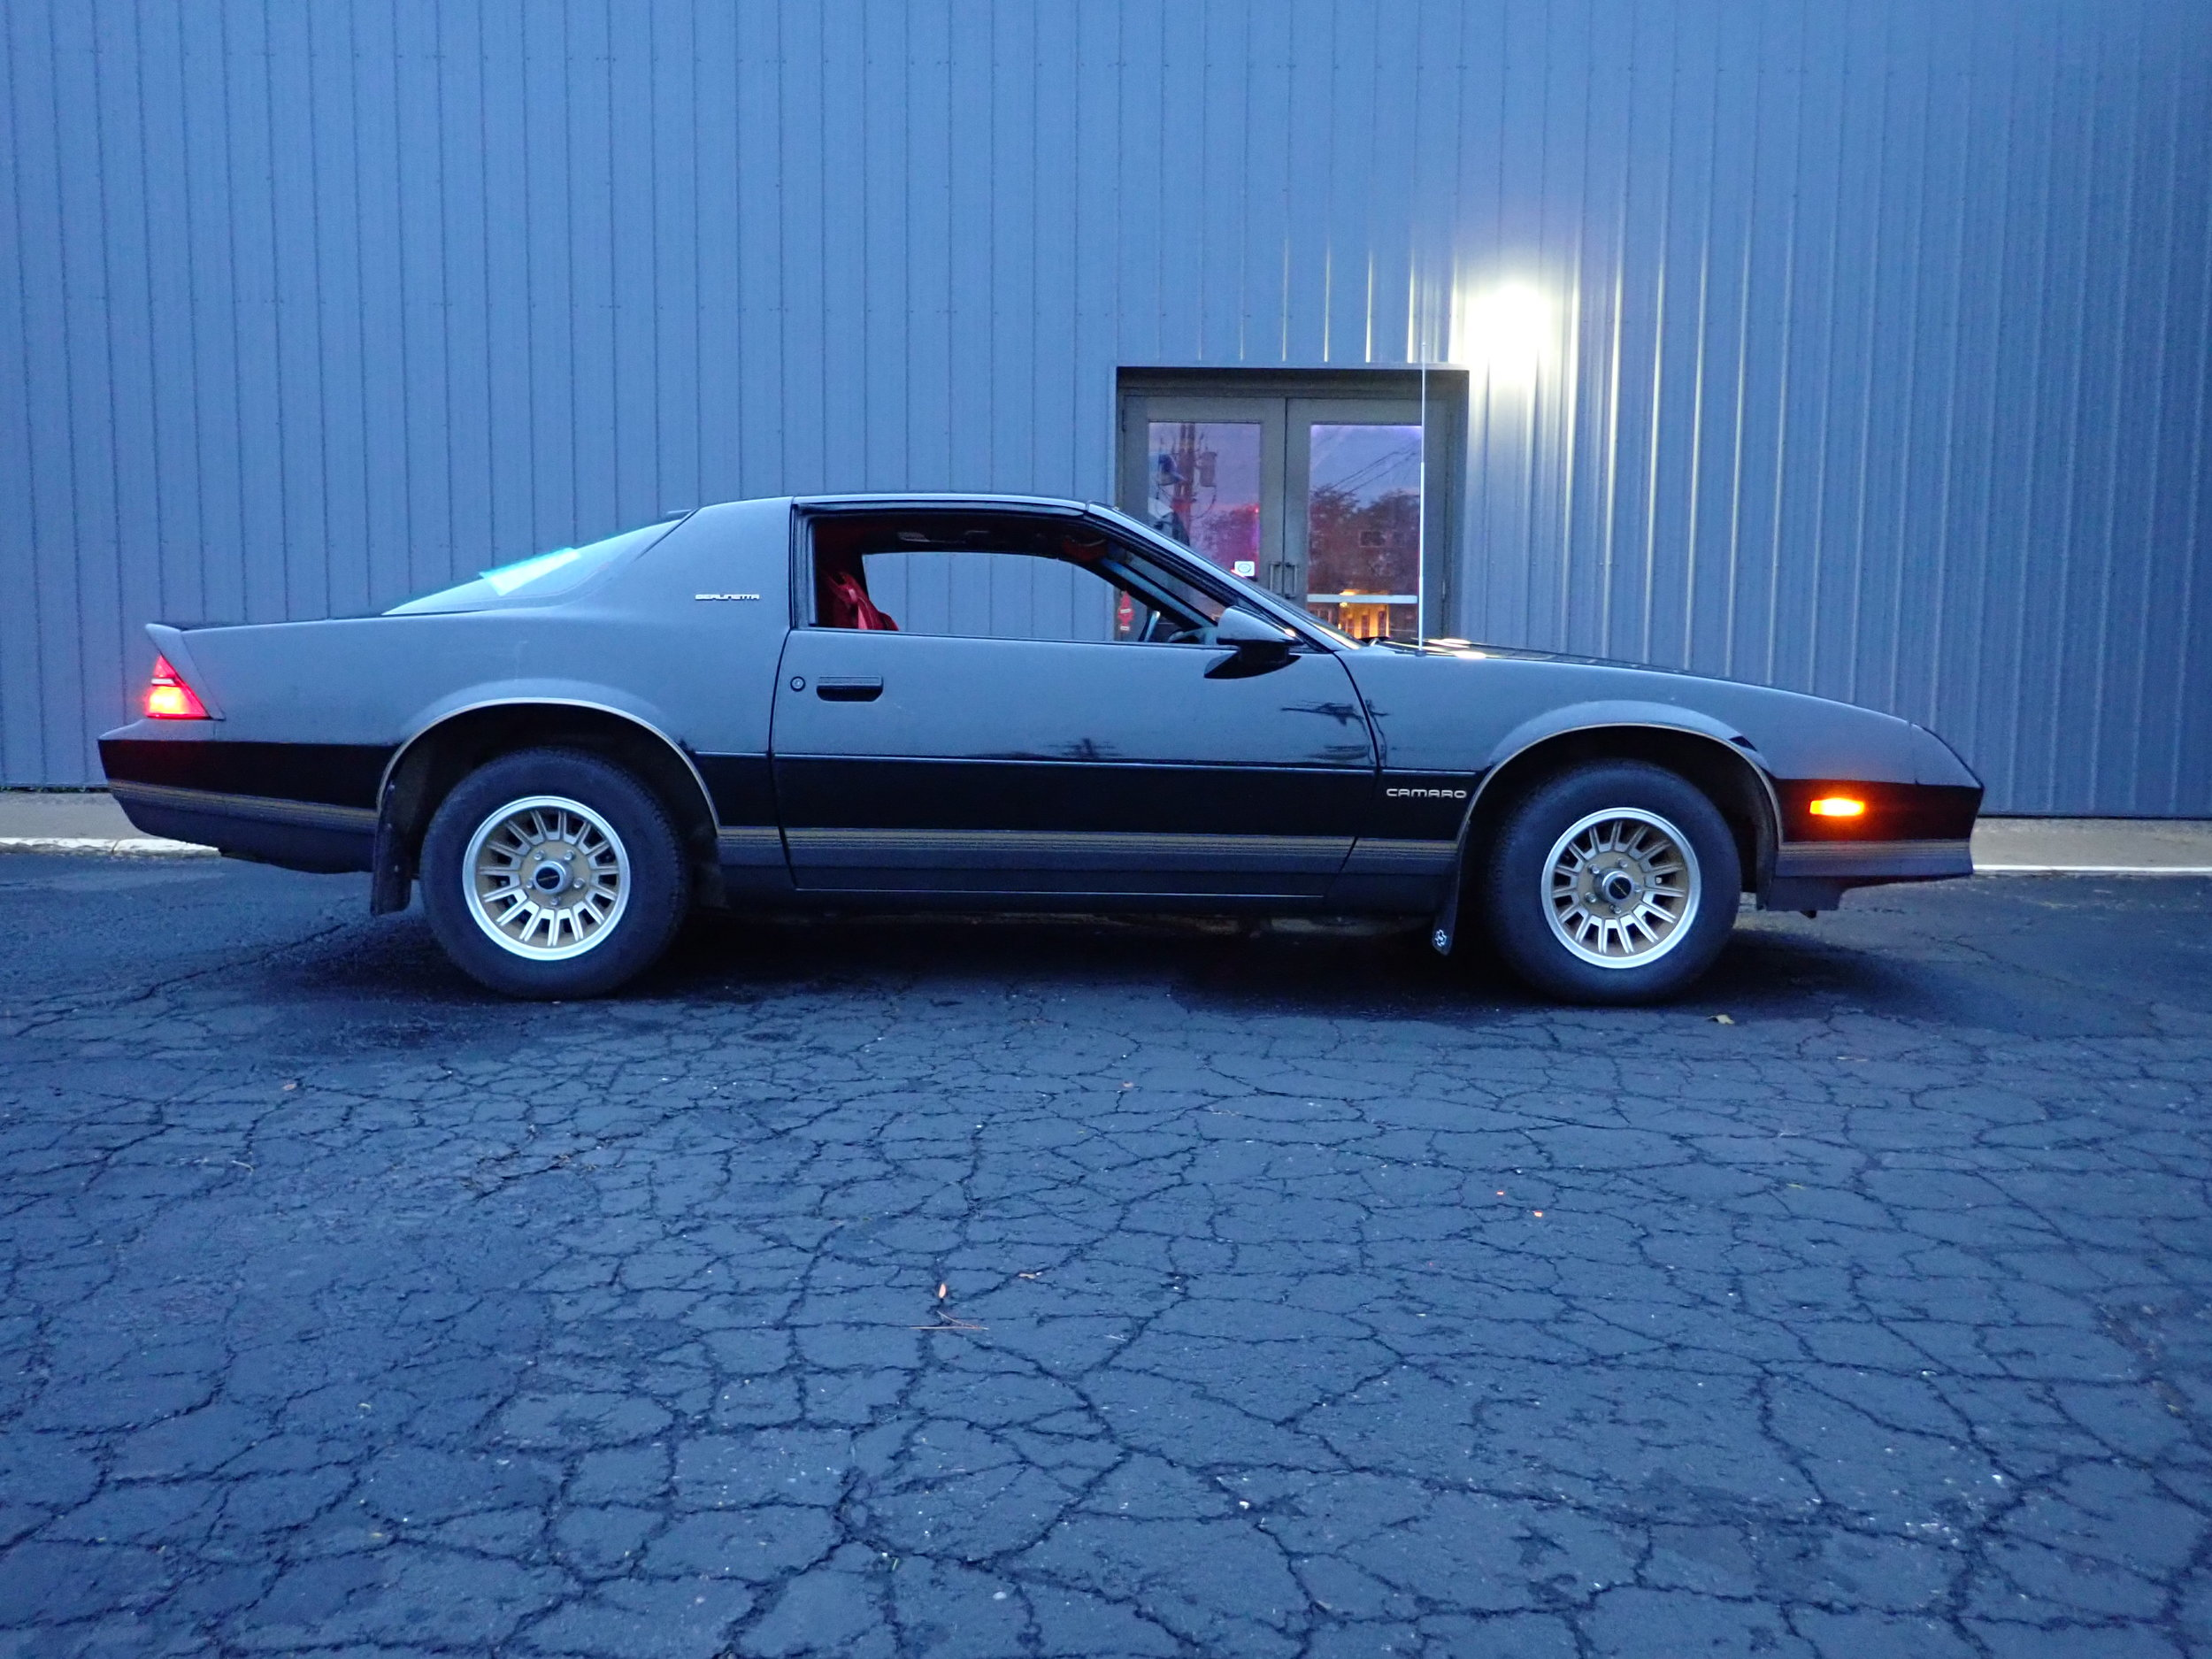 6 1986 Chevrolet Camaro Berlinetta Wherz F28.JPG